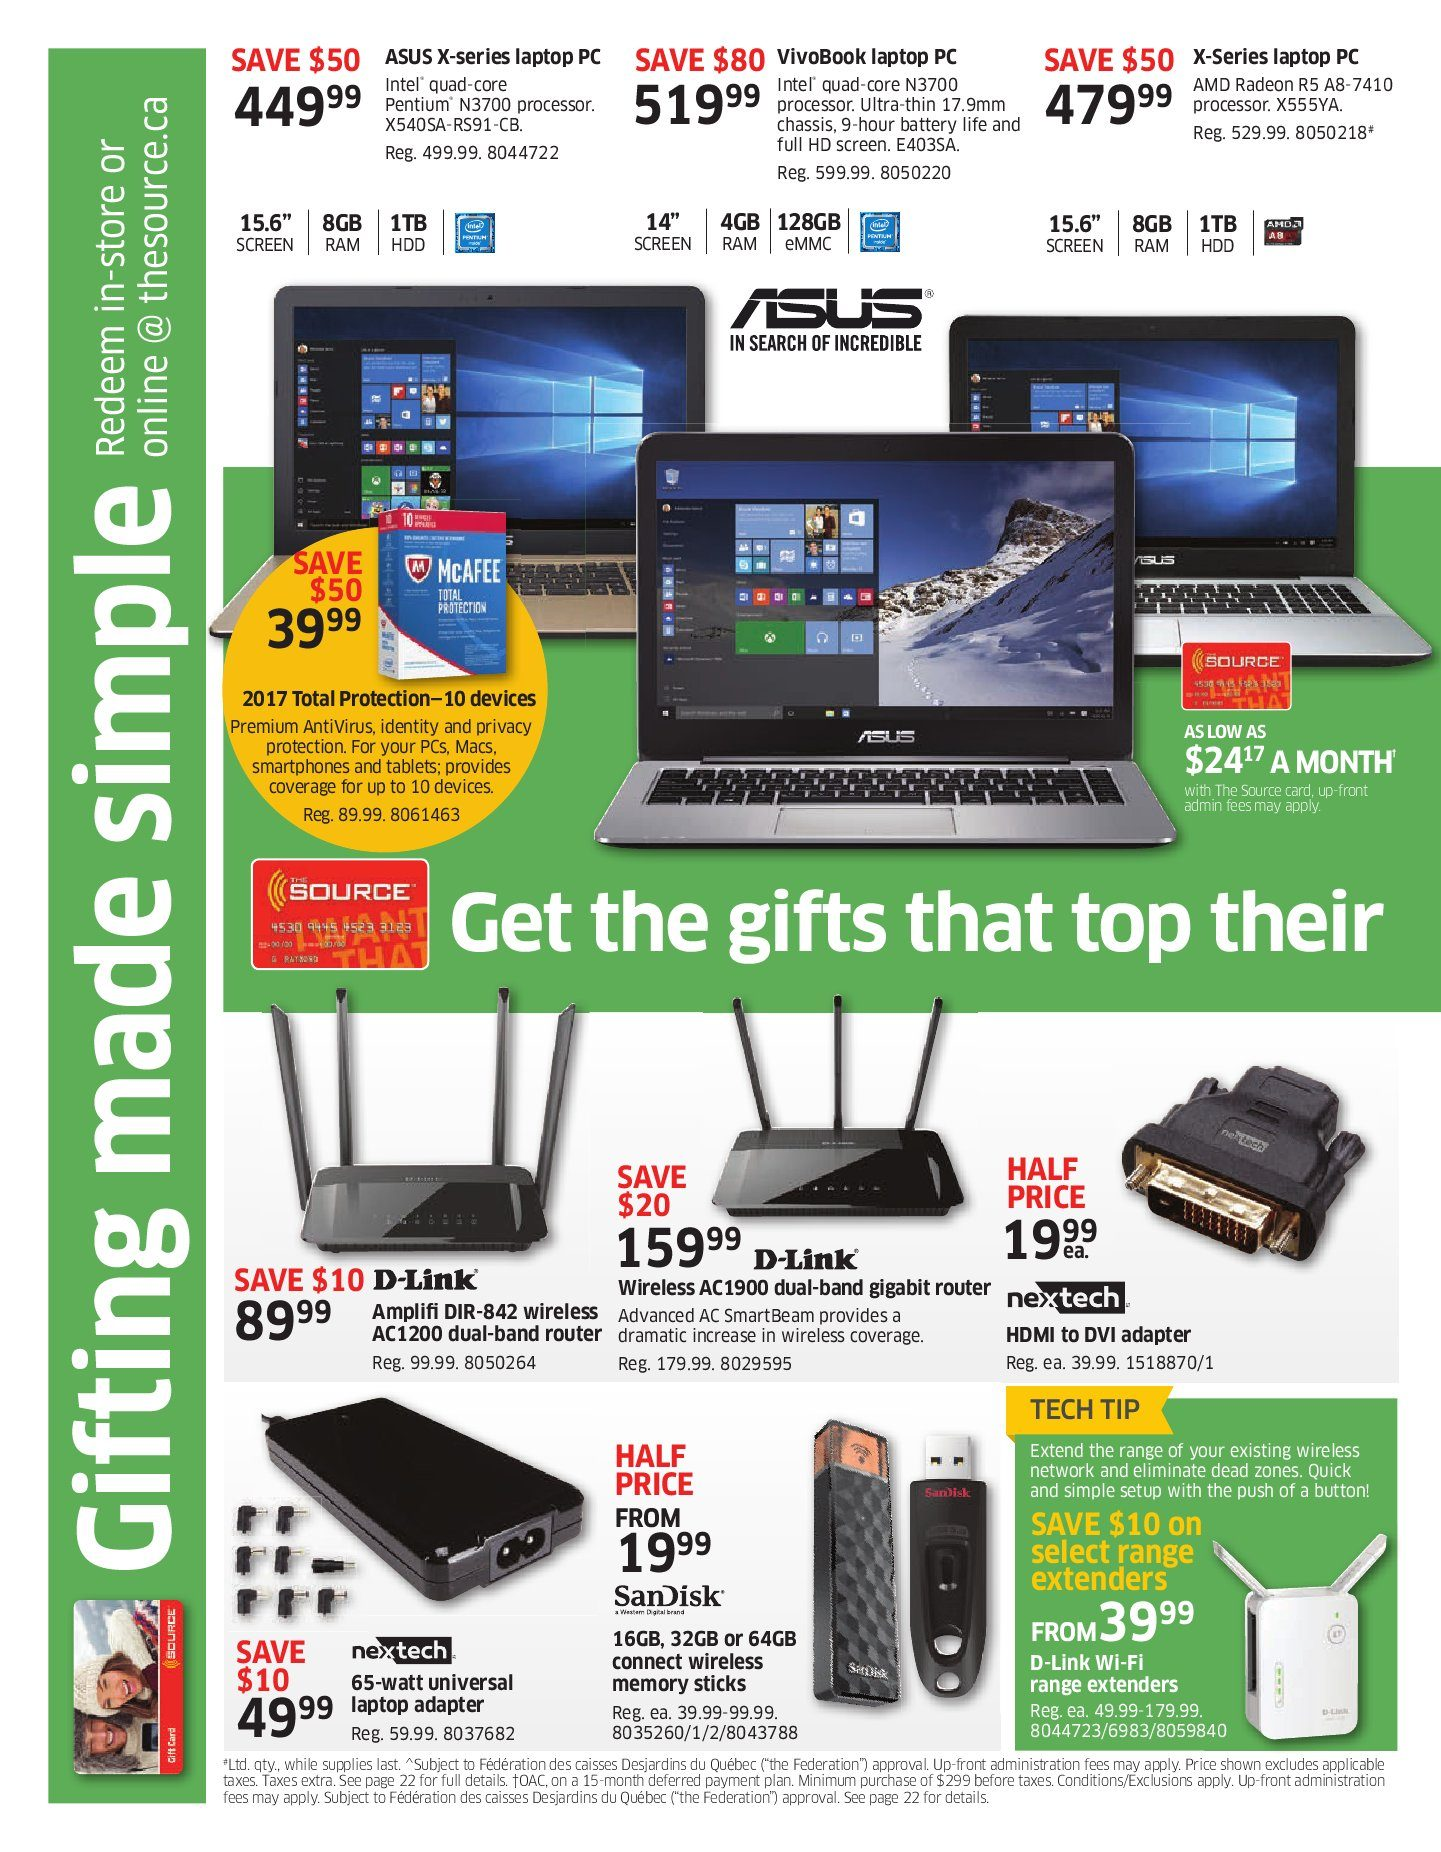 The source weekly flyer i want that for christmas cool gifts for the source weekly flyer i want that for christmas cool gifts for everyone on your list dec 8 14 redflagdeals gumiabroncs Choice Image